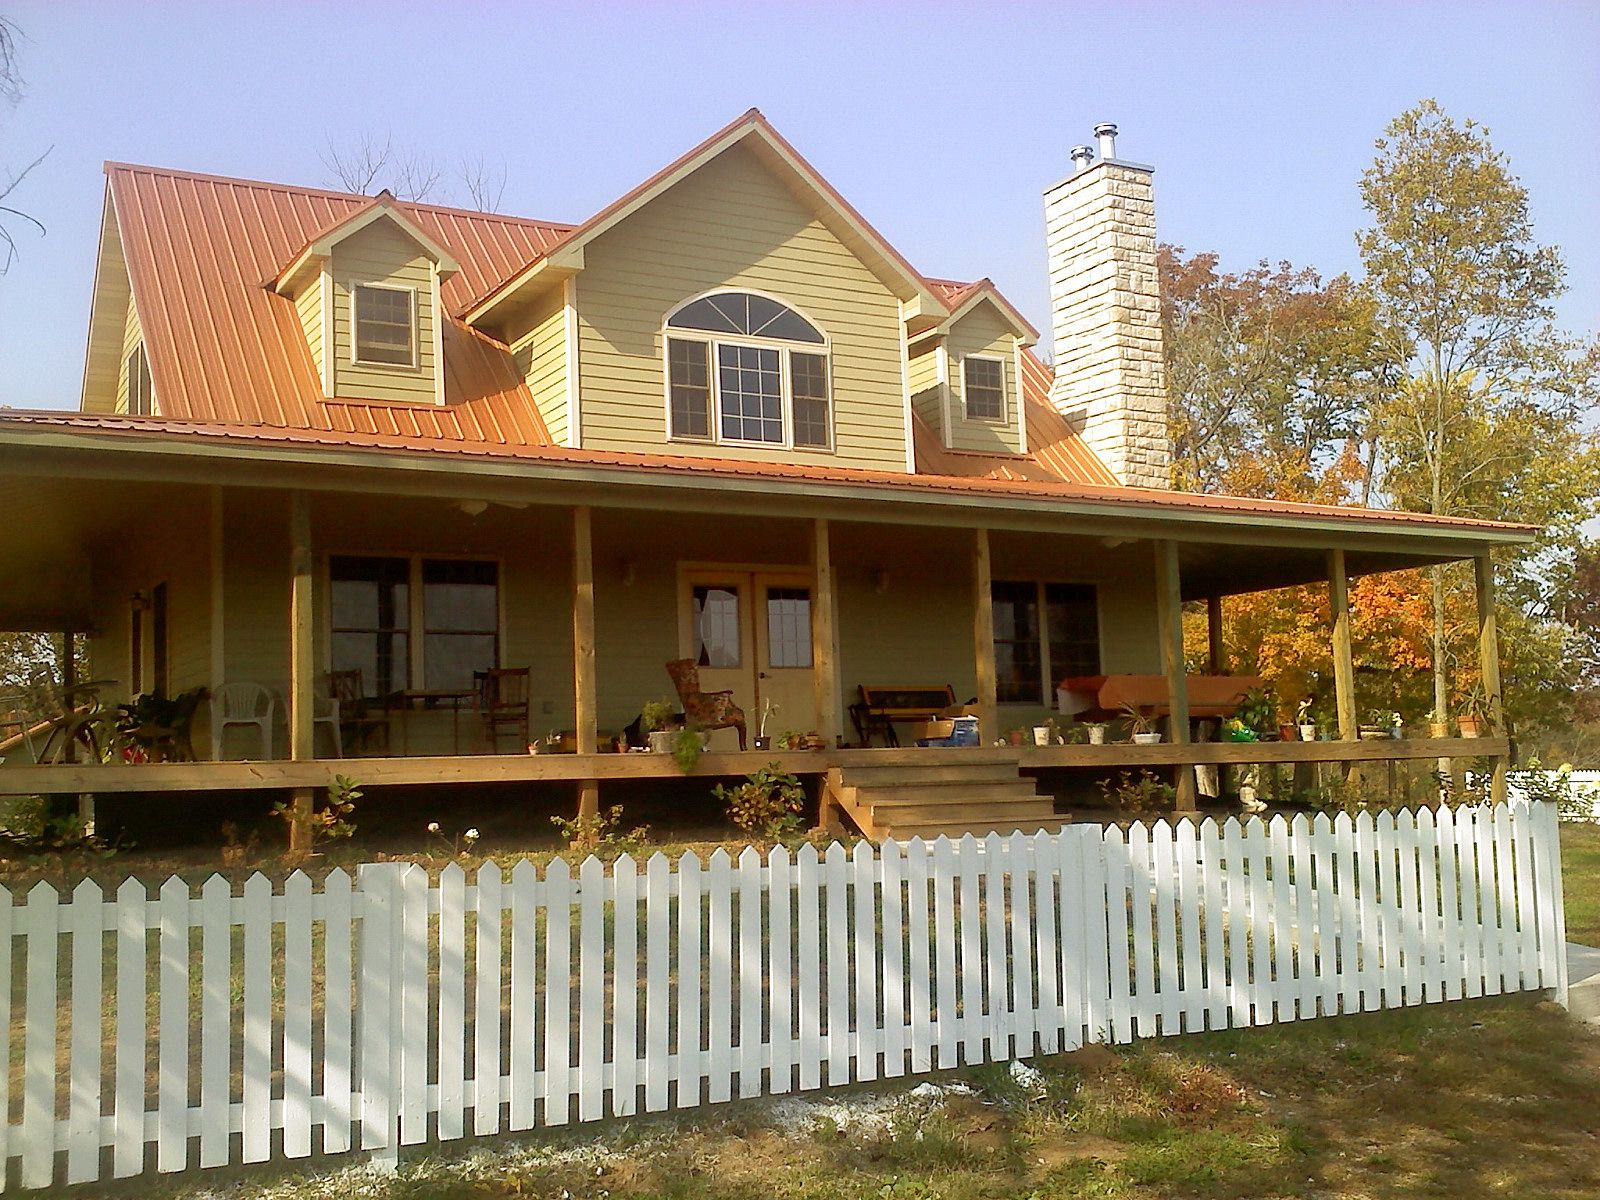 Copper On A Yellow House Google Search Home Ideas